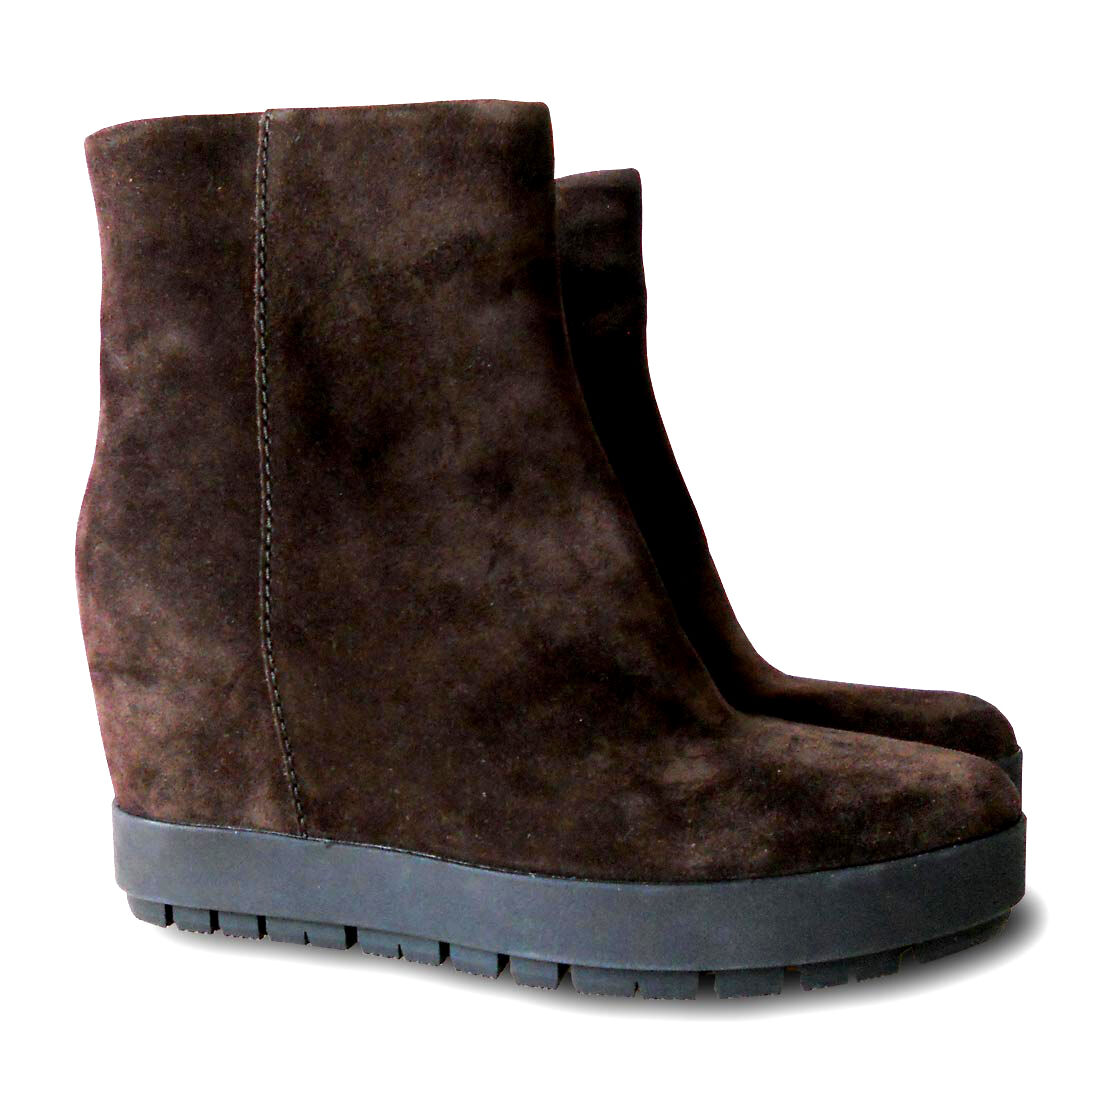 NEW    676 PRADA Suede Wedge Ankle Boot Rubber Sole - Brown - Size 38 af7c48